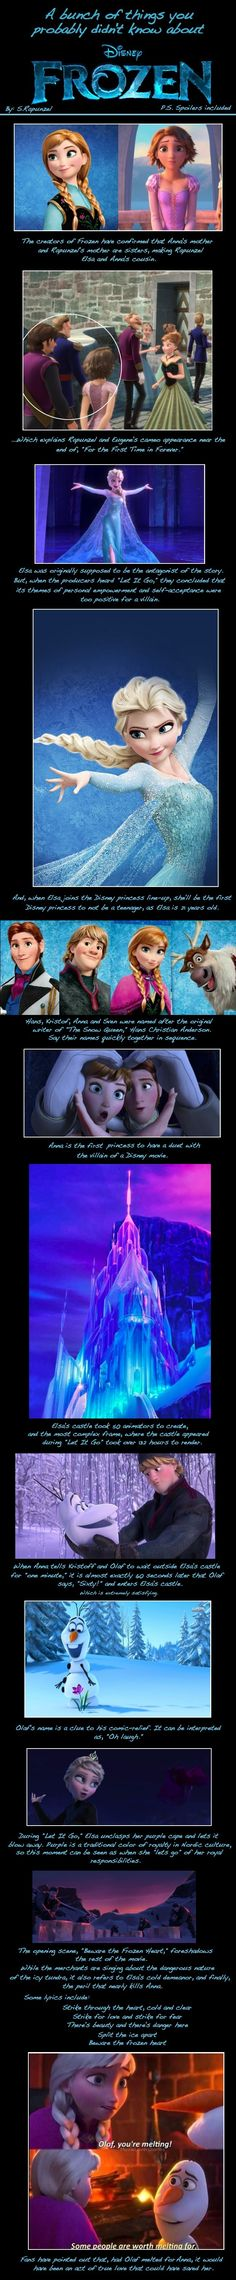 frozen facts